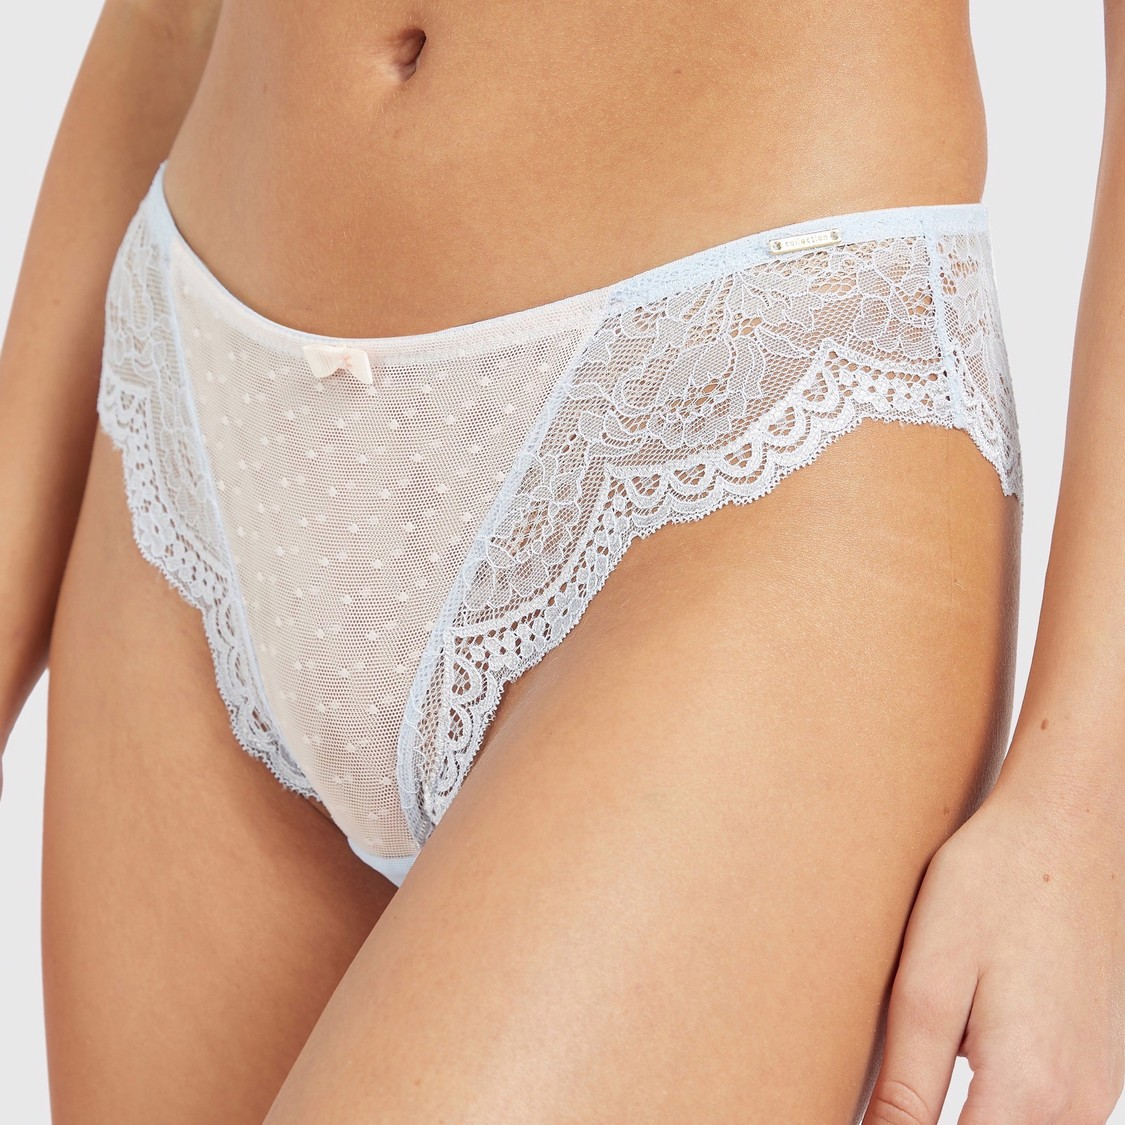 Textured Bikini Briefs with Lace Detail and Bow Applique